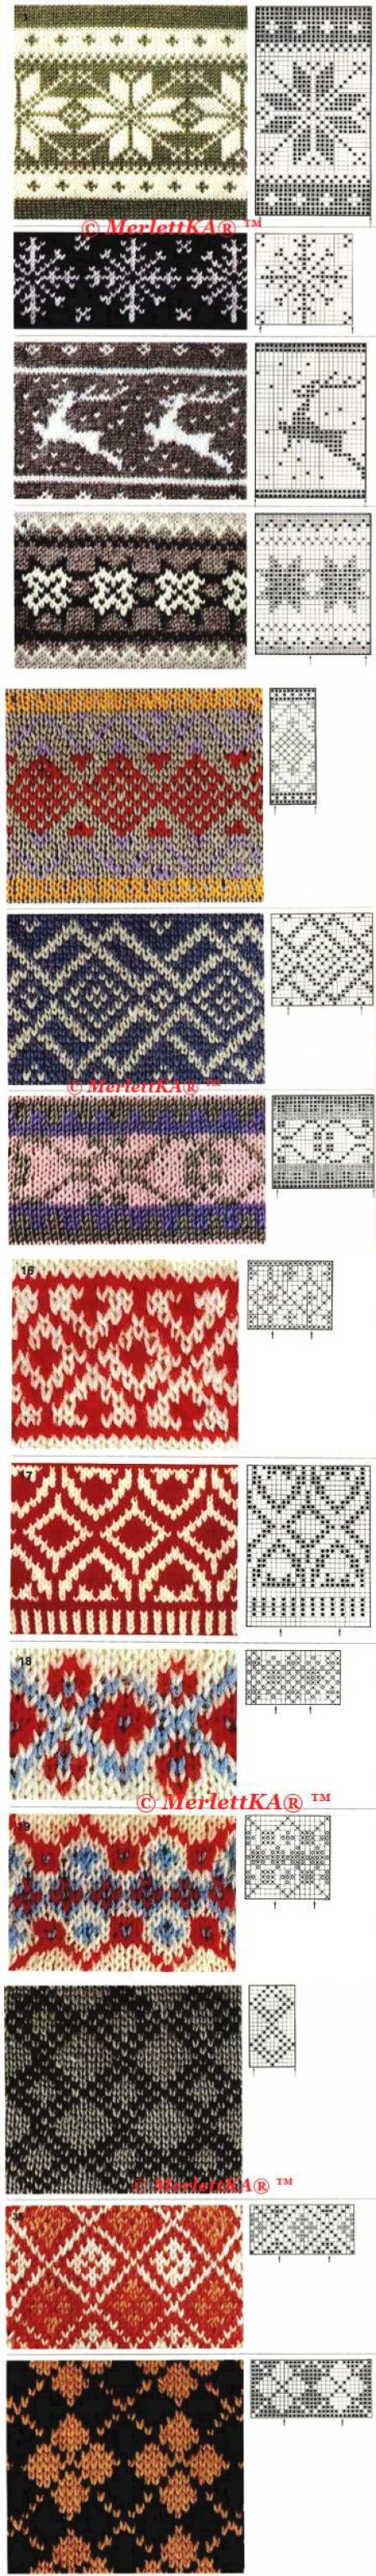 283 best Knitting & crafts images on Pinterest | Knitting patterns ...